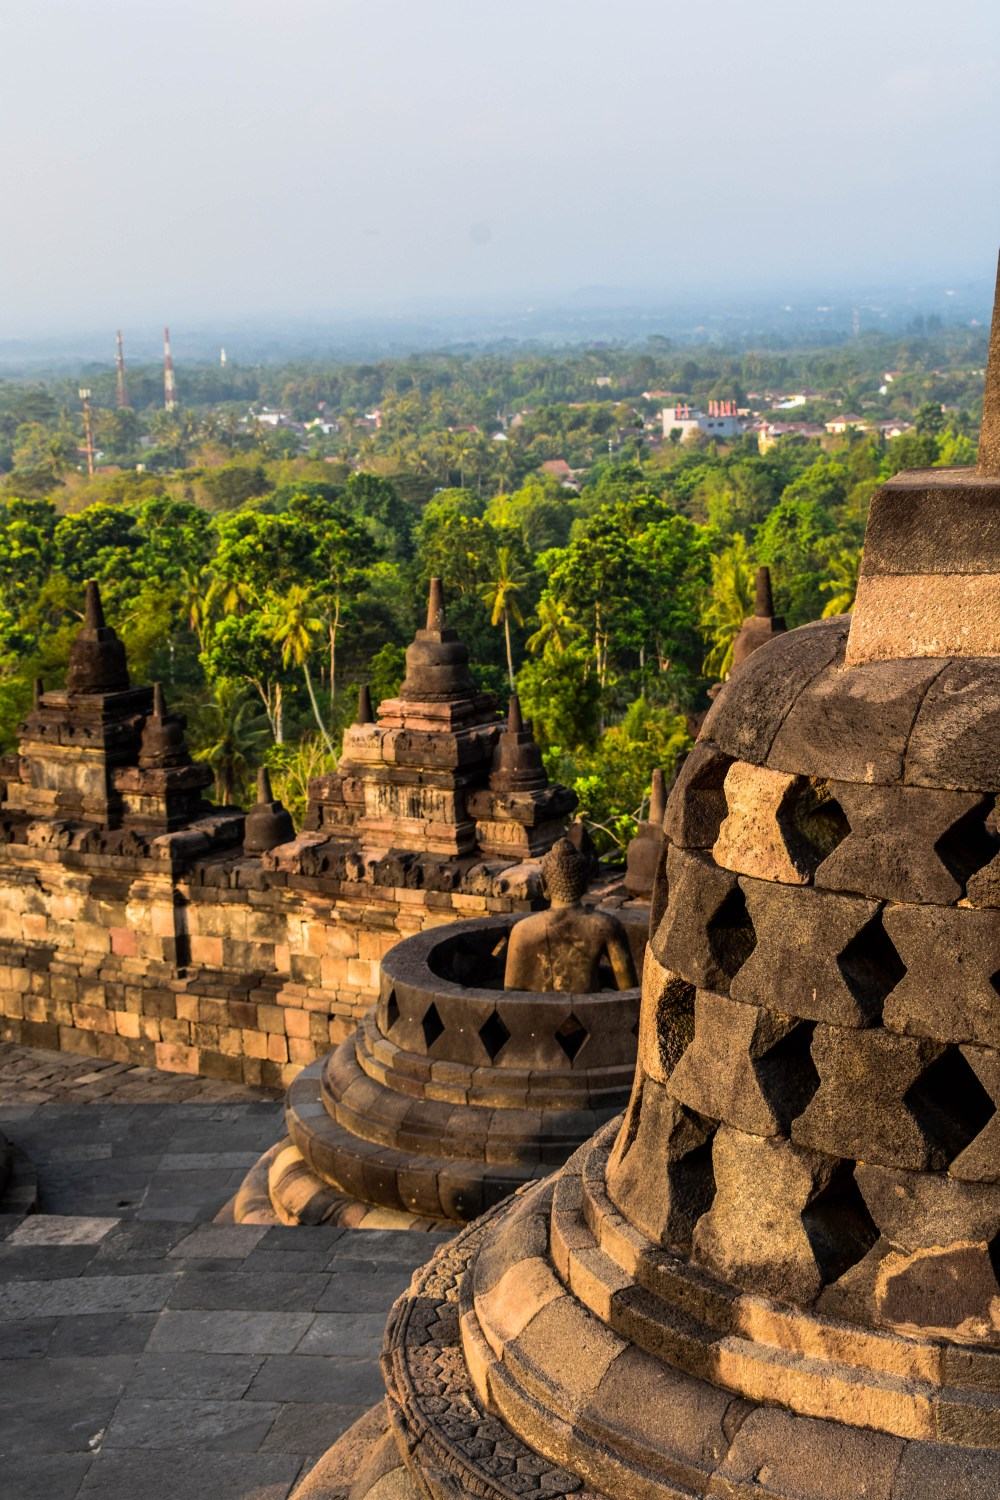 Borobudur Hd Wallpaper : borobudur, wallpaper, Borobudur, Temple, Pictures, Download, Images, Unsplash